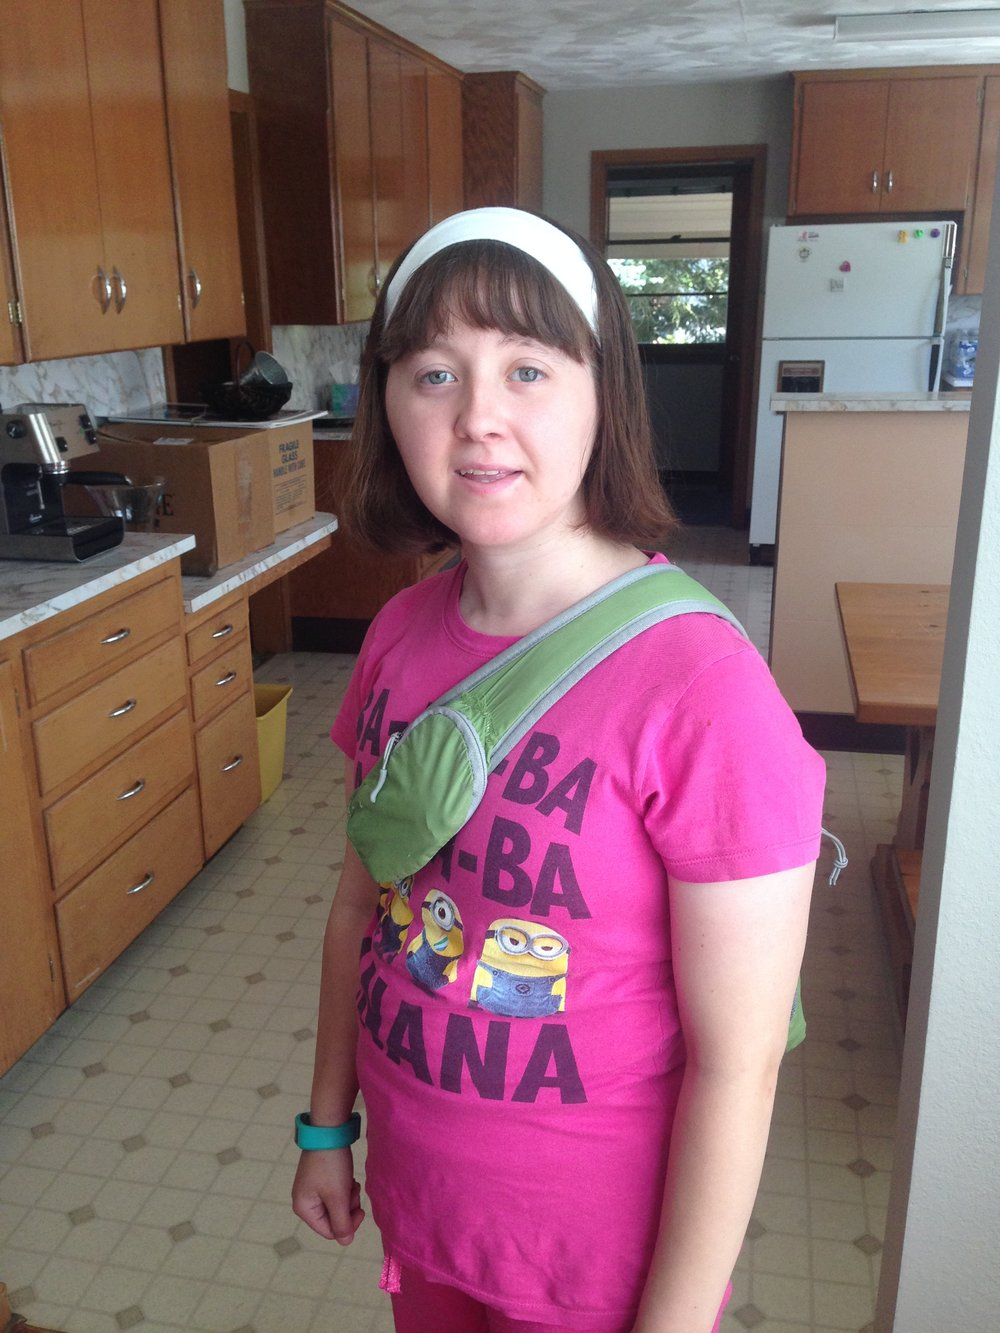 June - Kayla CushingKayla has started working with us here at Step By Step, sponsored through the Trillium organization. From bundling diaper stacks, to sorting baby clothes, putting together welcome home bags, and assembling our informational folders, Kayla always works hard and always gets the job done while keeping that great smile on her face! Thank you Kayla for all of your help, we really appreciate you!